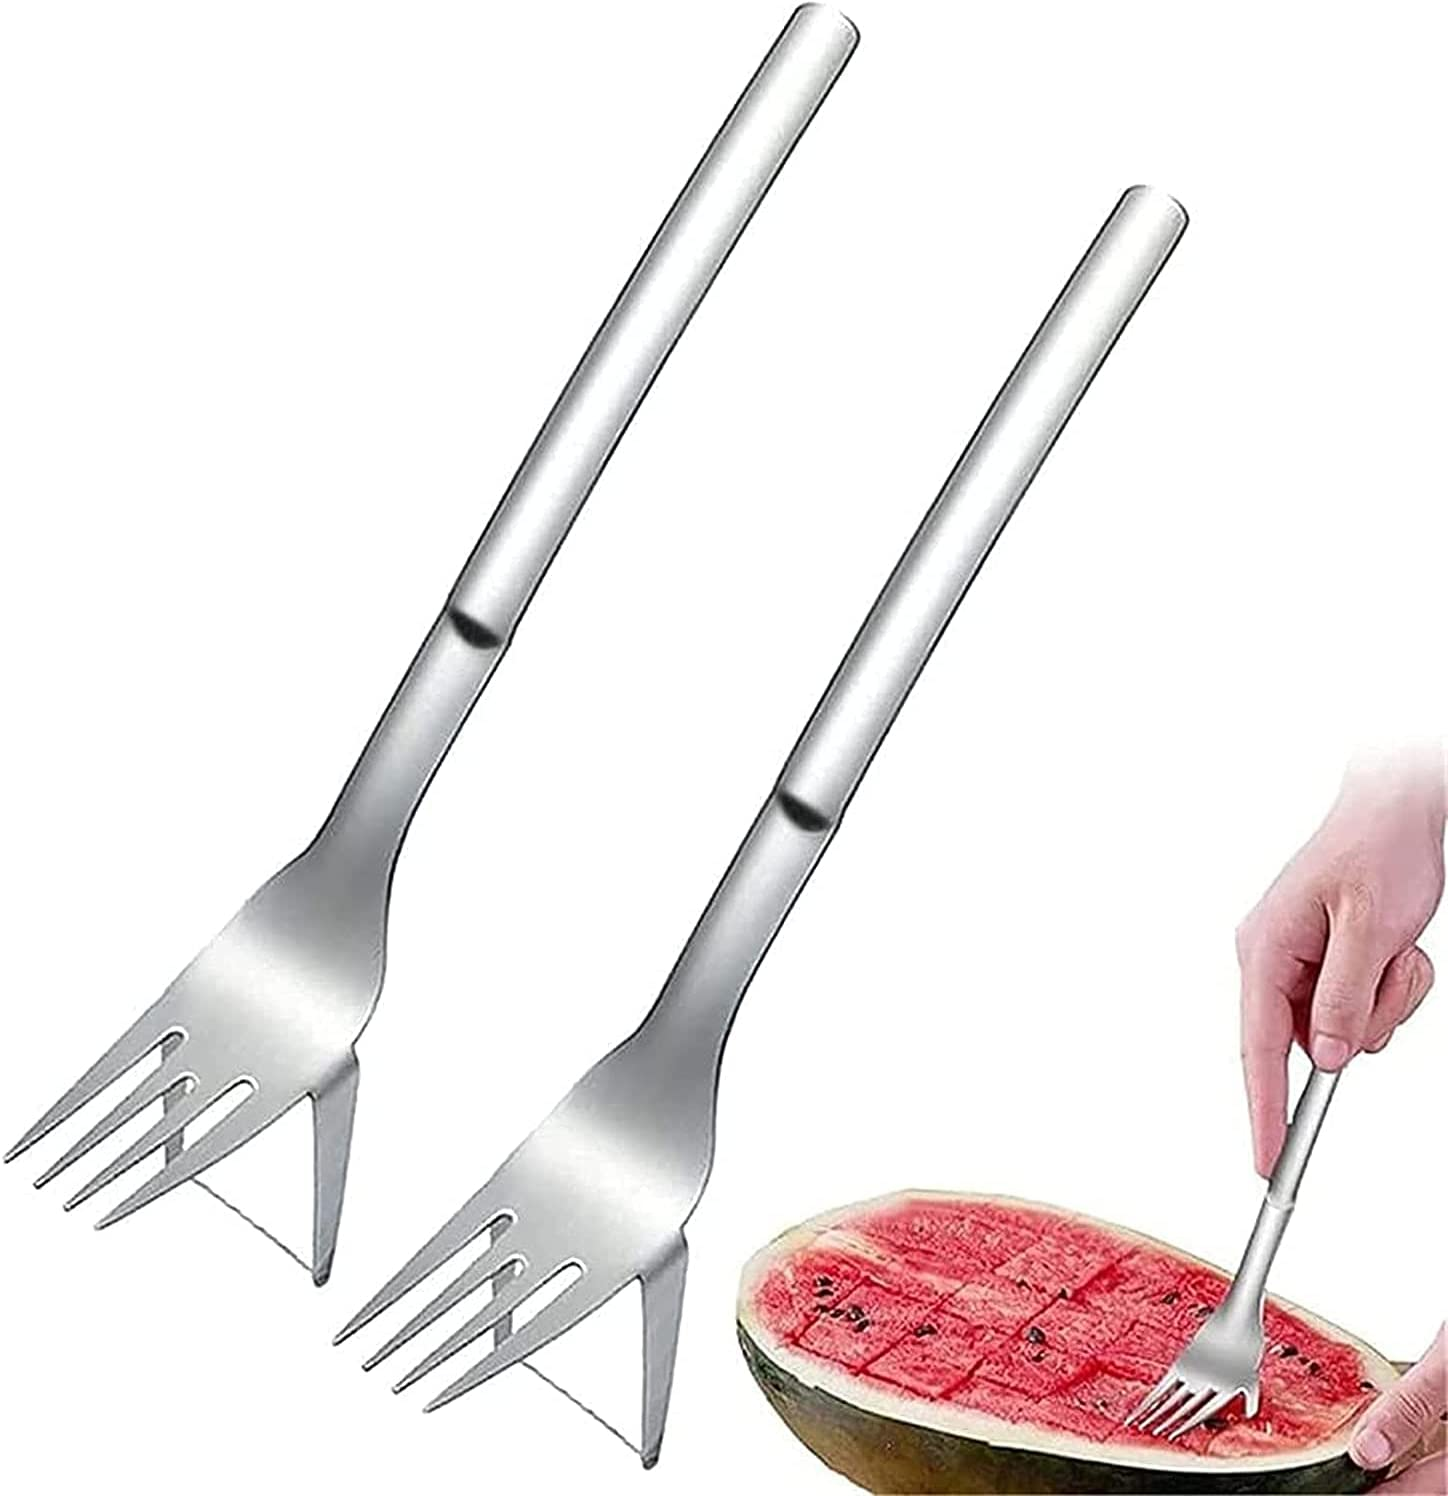 Cut Watermelon Mail order Artifact Stainless Cutte Steel Slicer NEW before selling